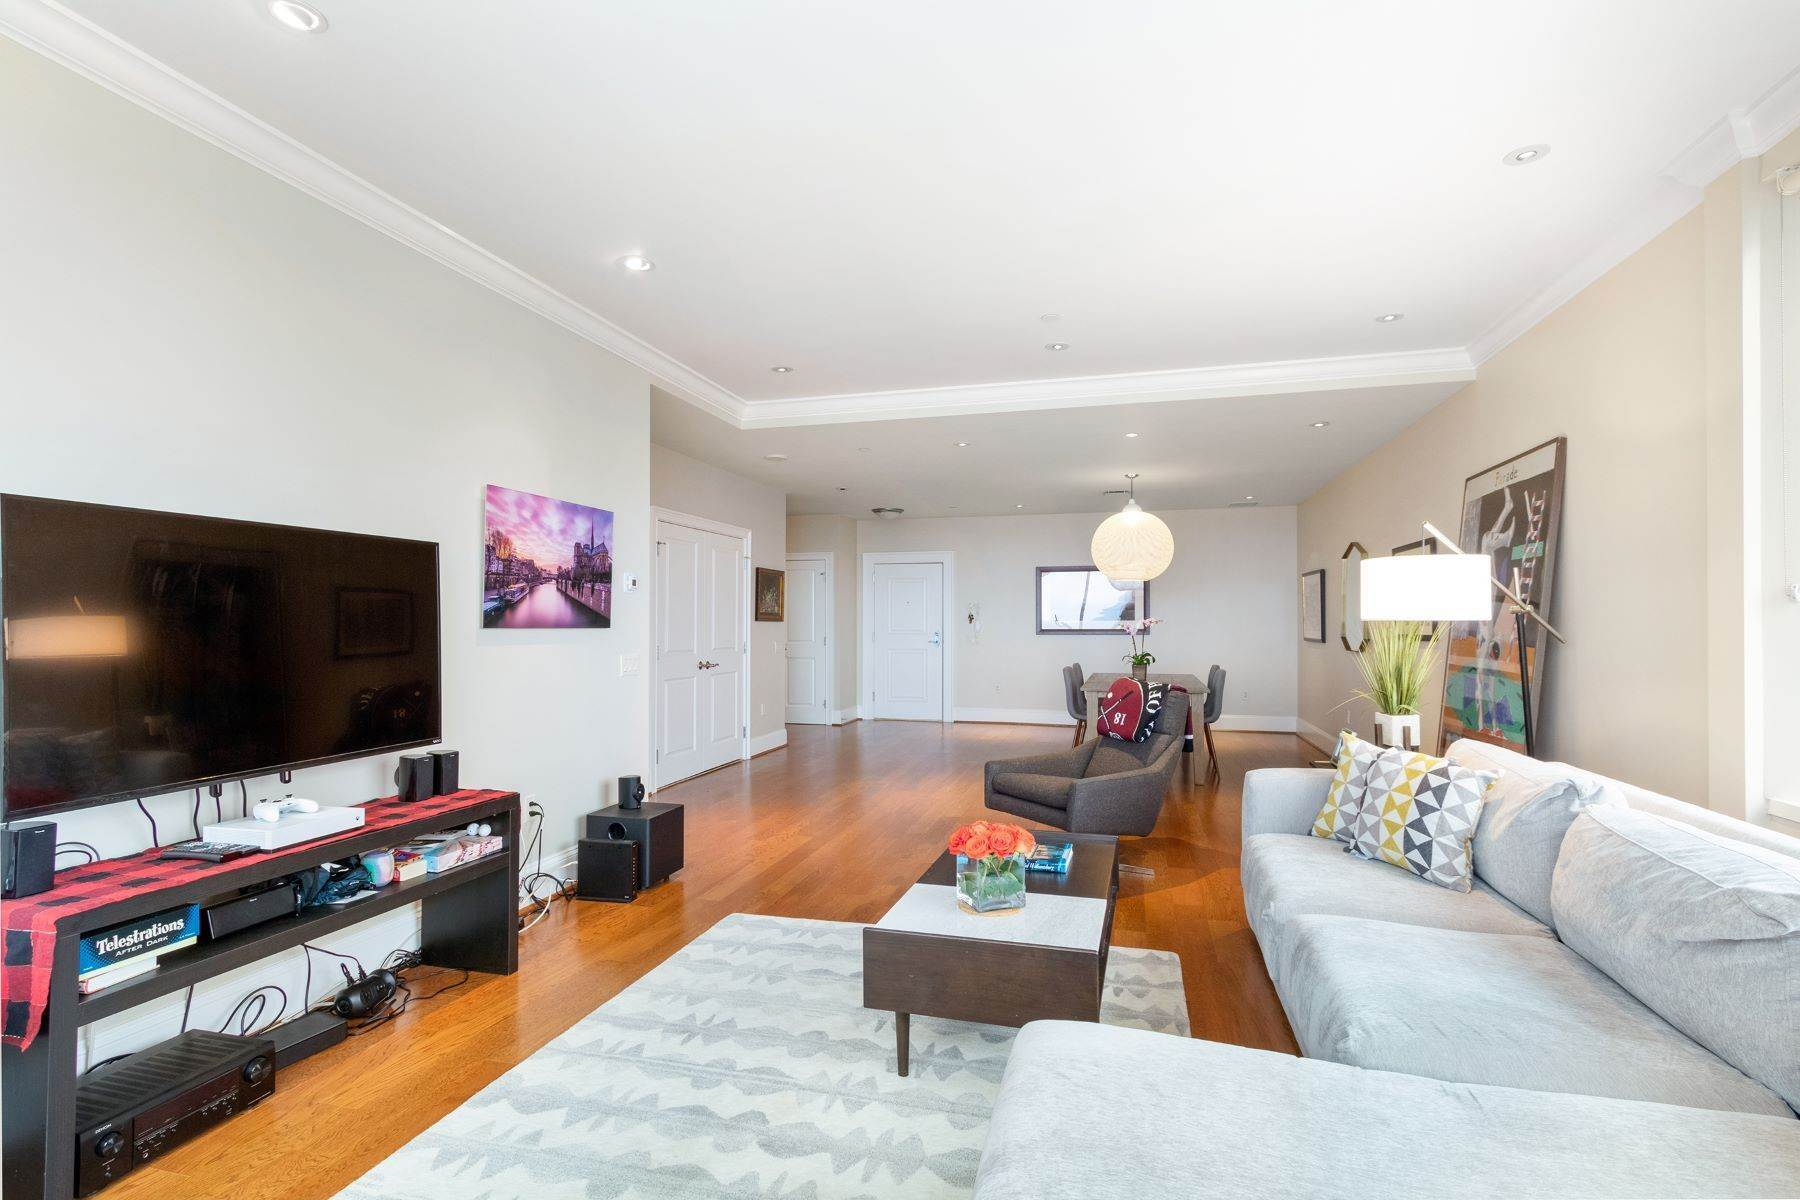 8. Apartments for Sale at 50 S 16TH ST #4202, 4202 Philadelphia, Pennsylvania 19102 United States